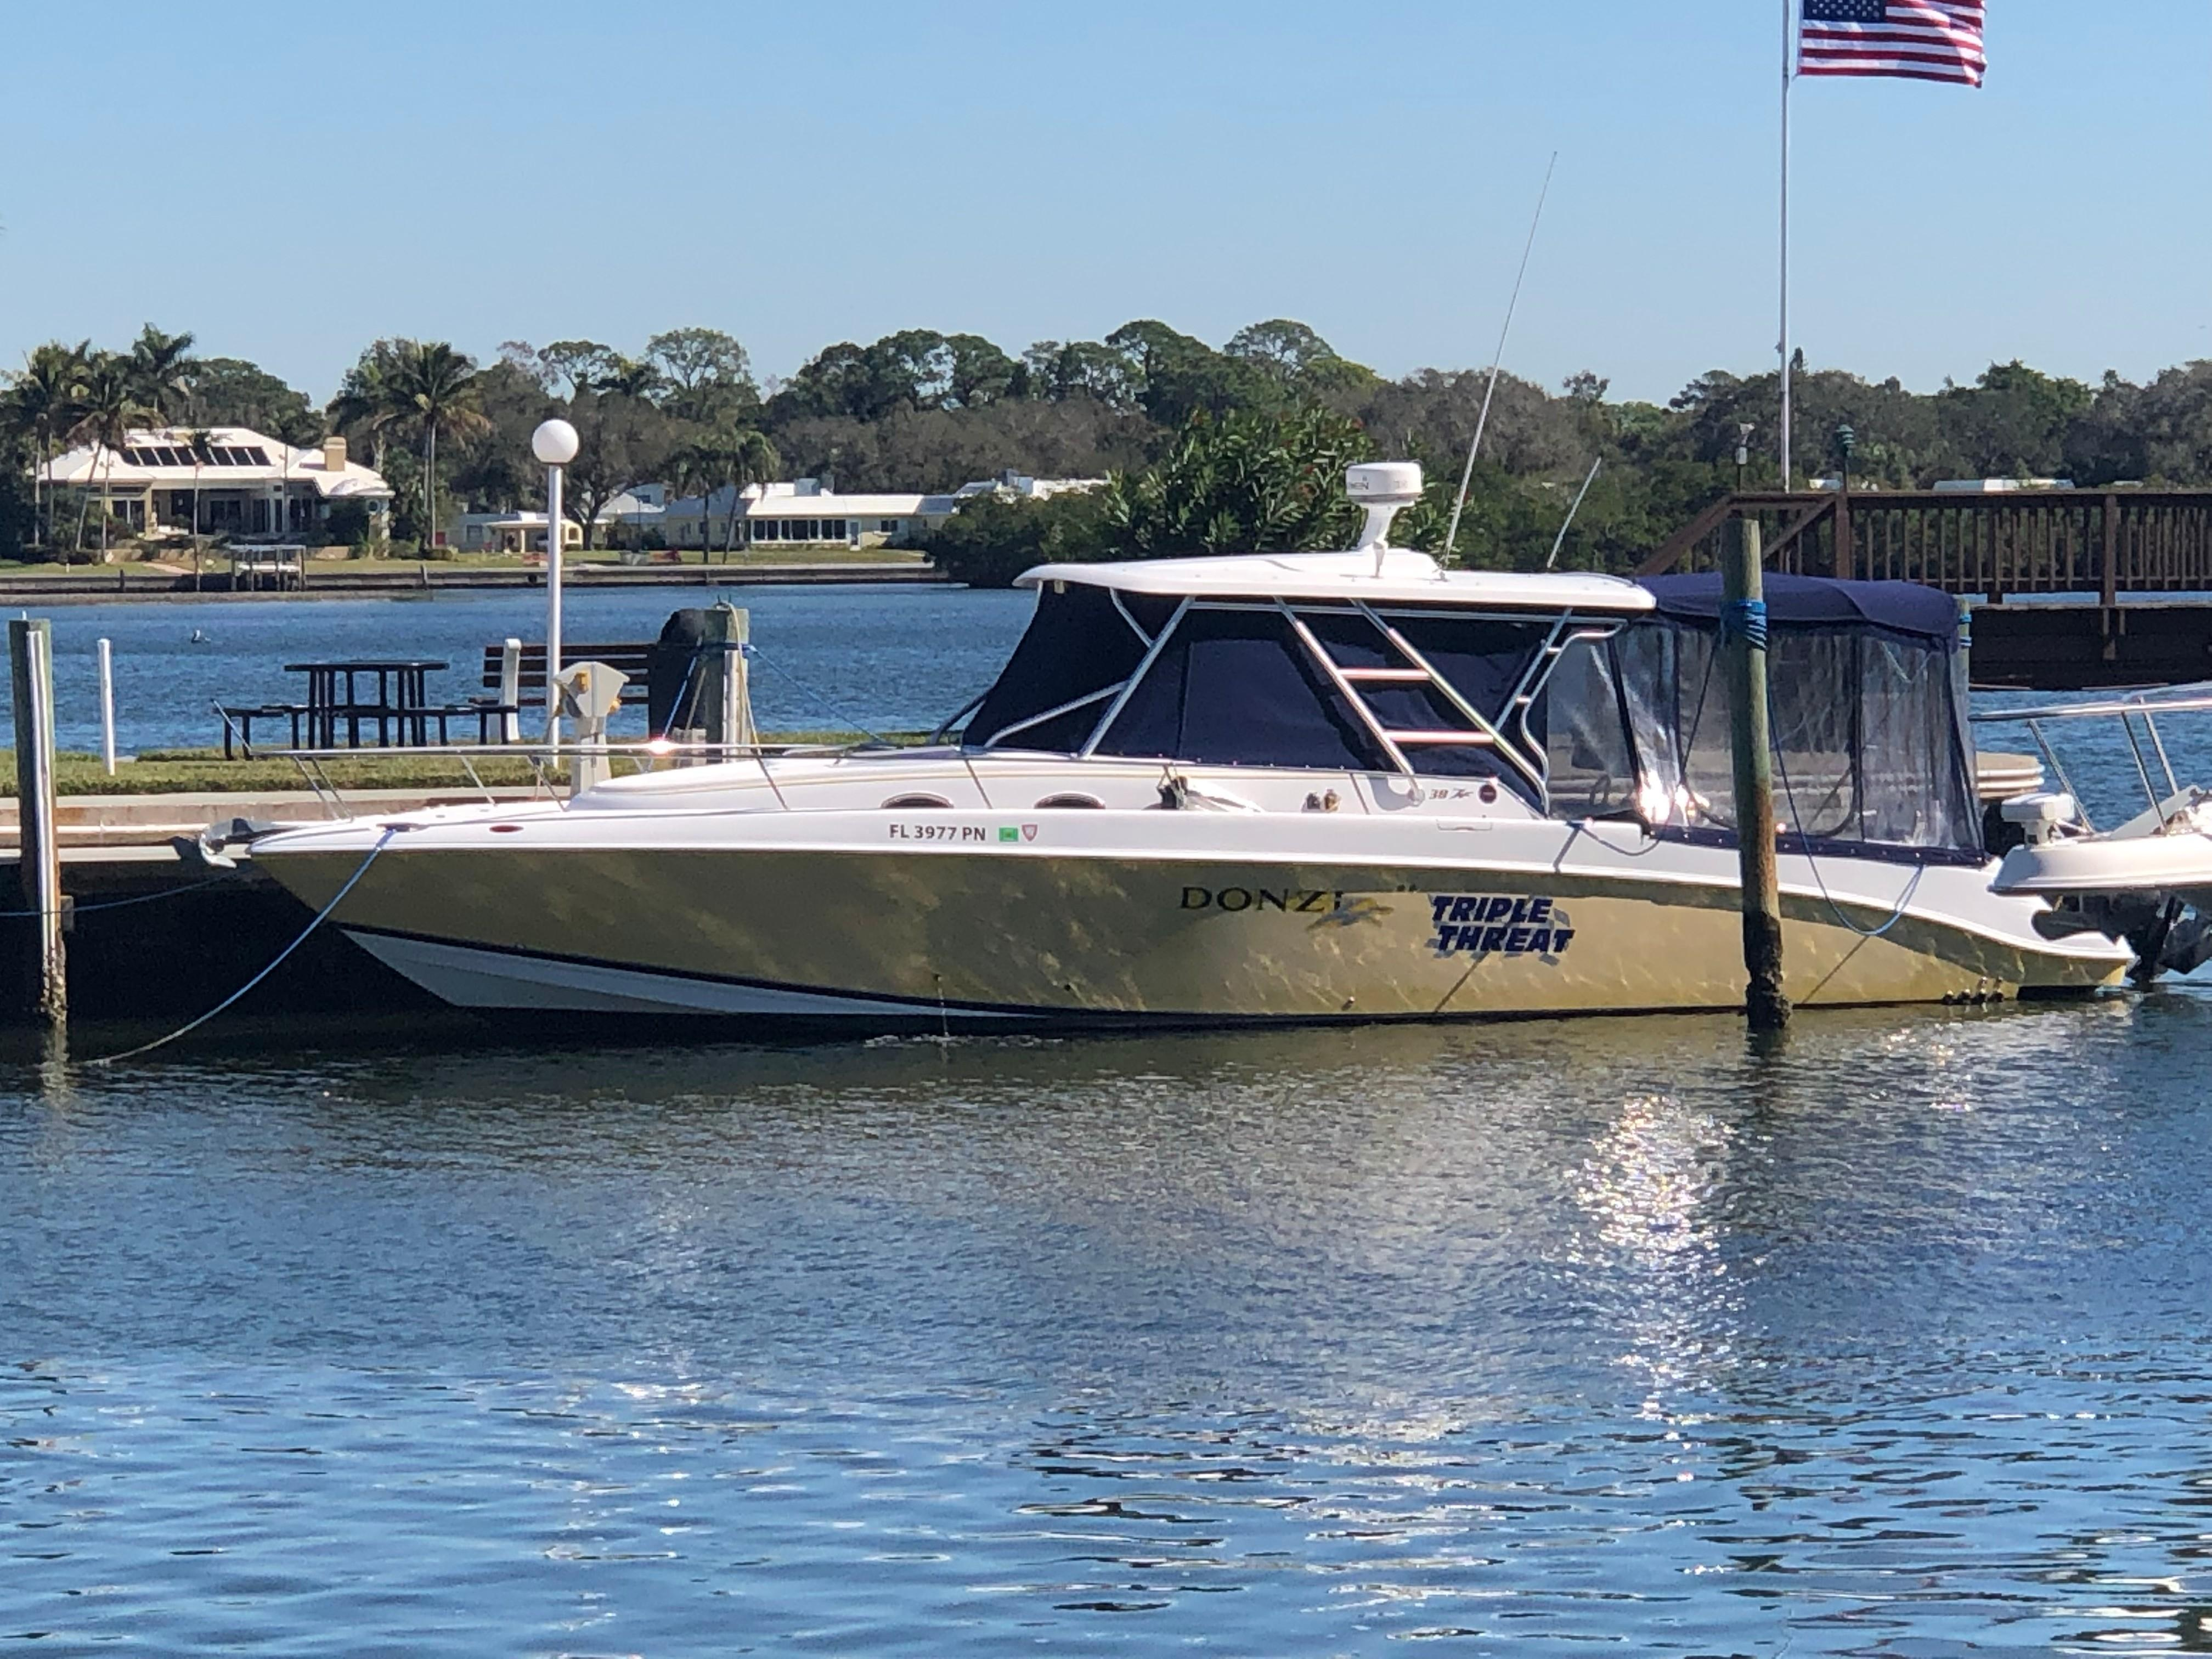 Donzi 38 Zf   New and Used Boats for Sale